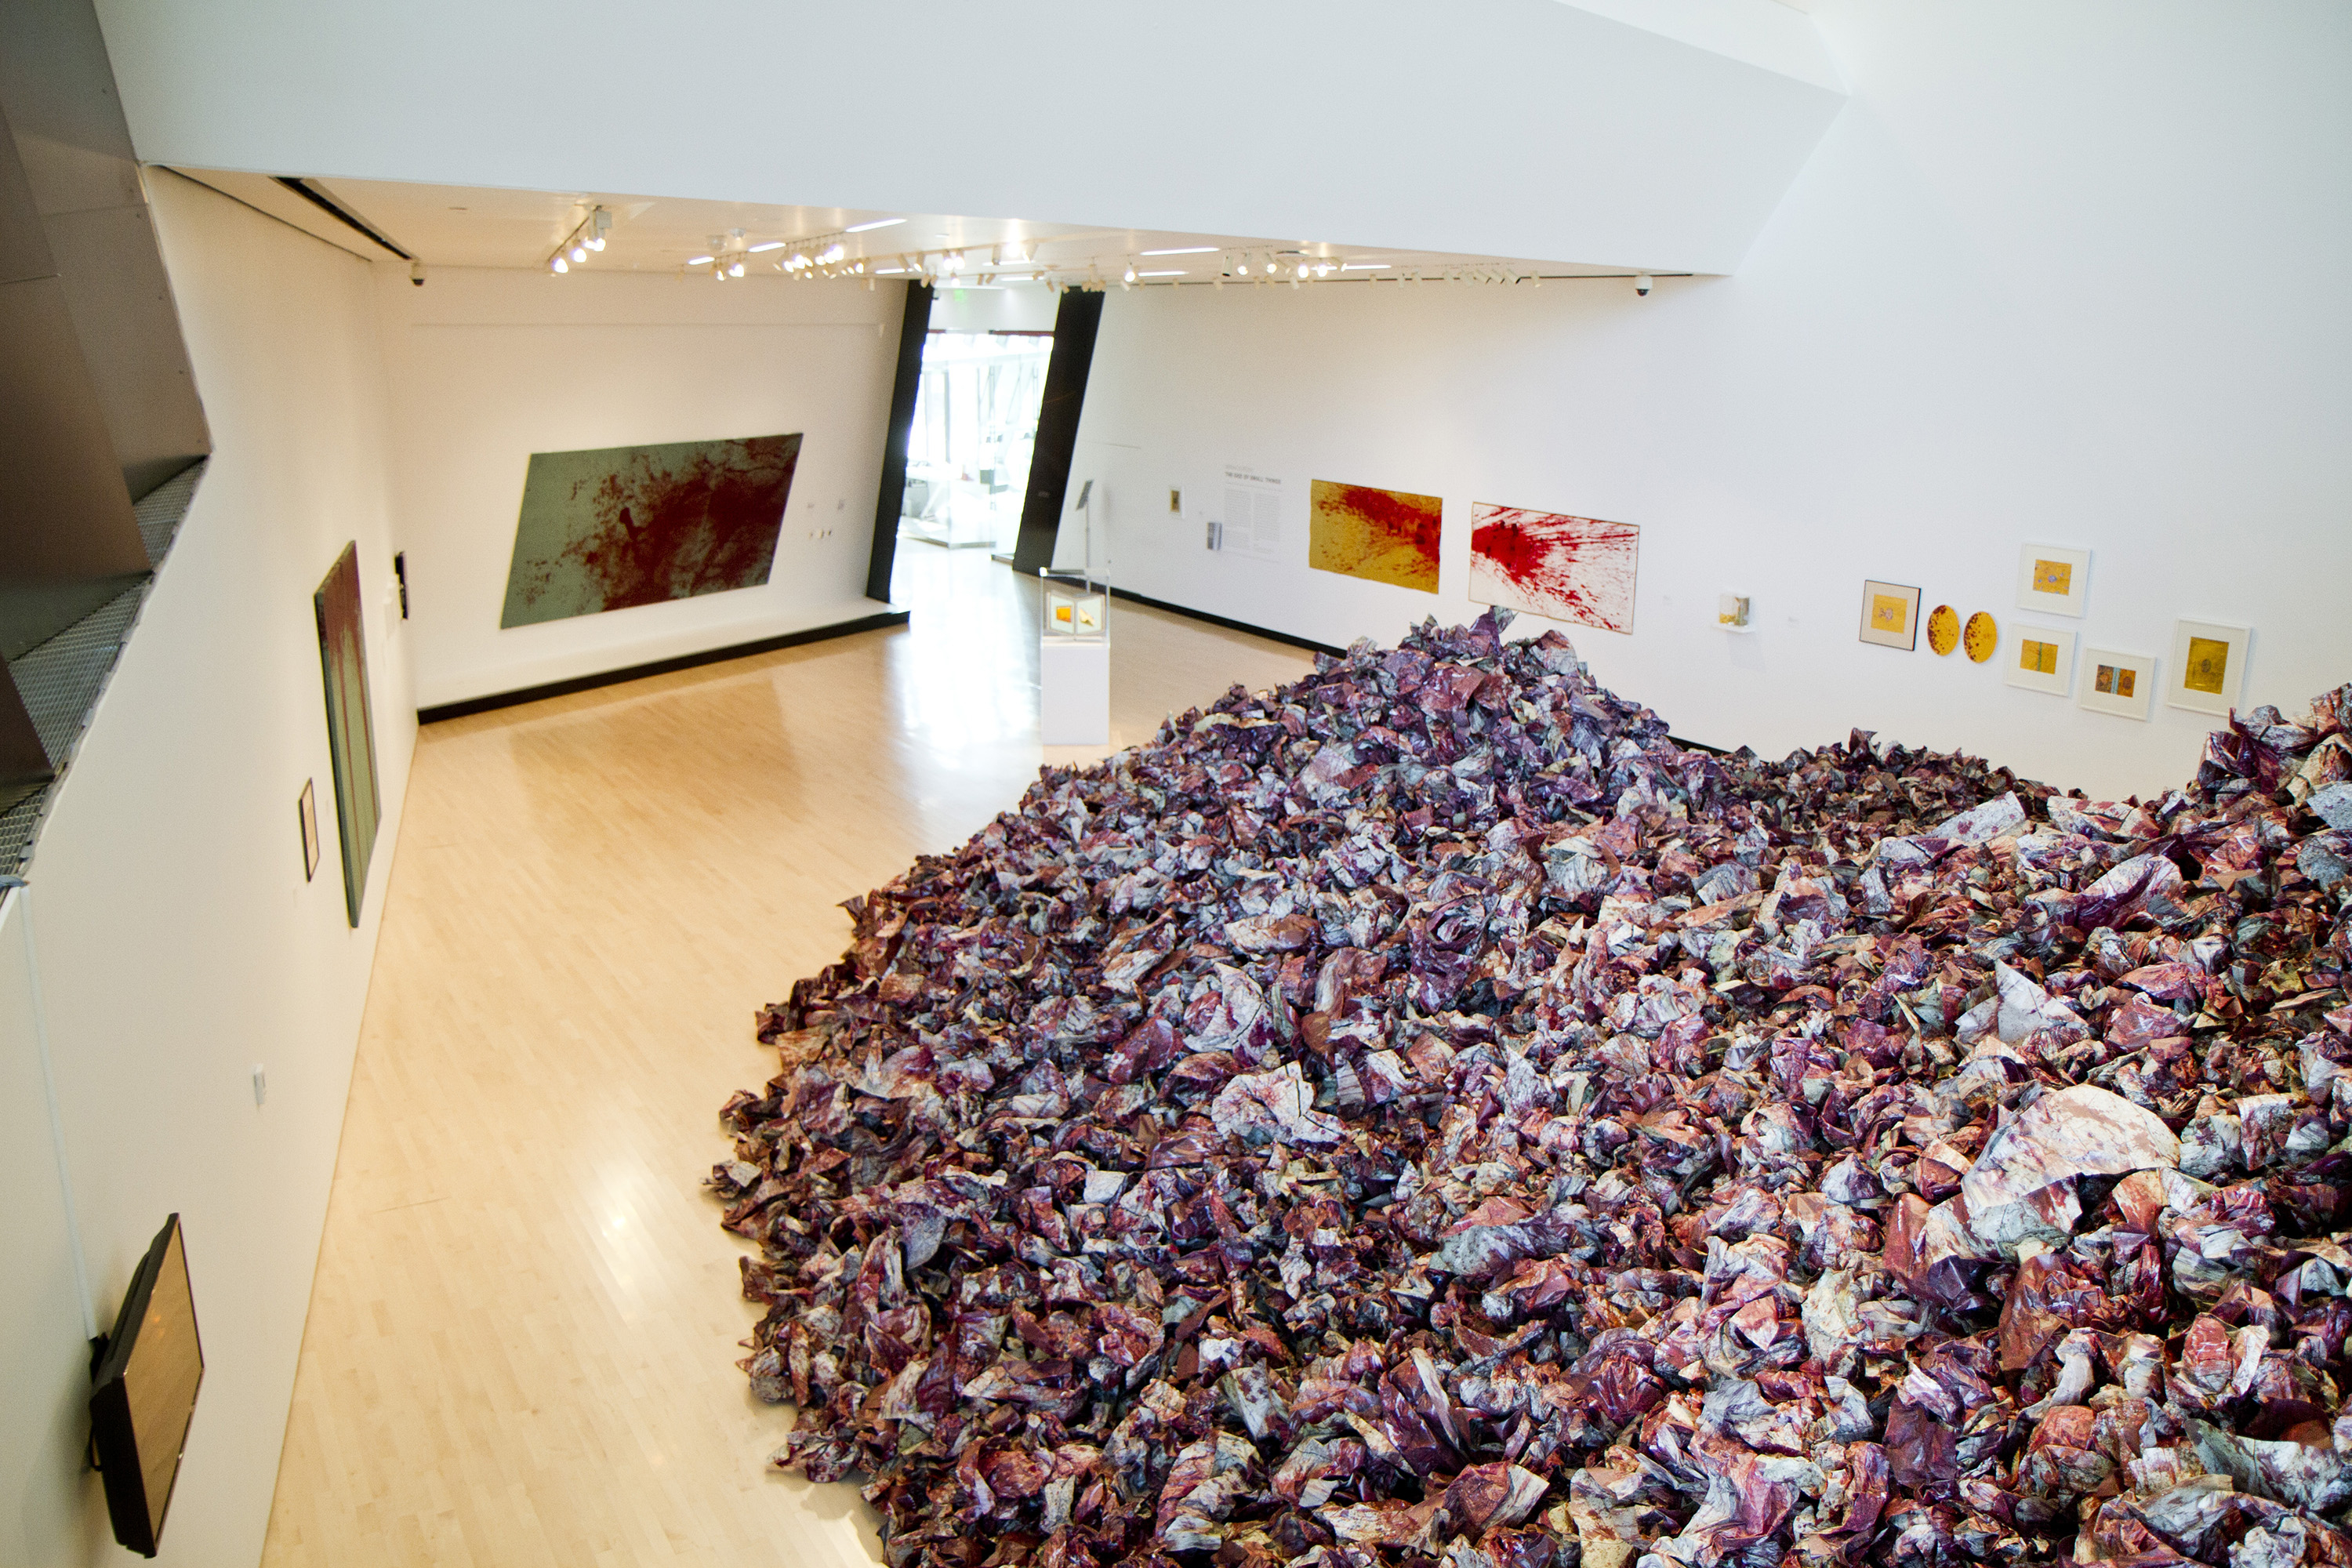 <i>Imran Qureshi: The God of Small Things</i>, installation view at the Eli and Edythe Broad Art Museum at Michigan State University, 2014. Photo: Eat Pomegranate Photography